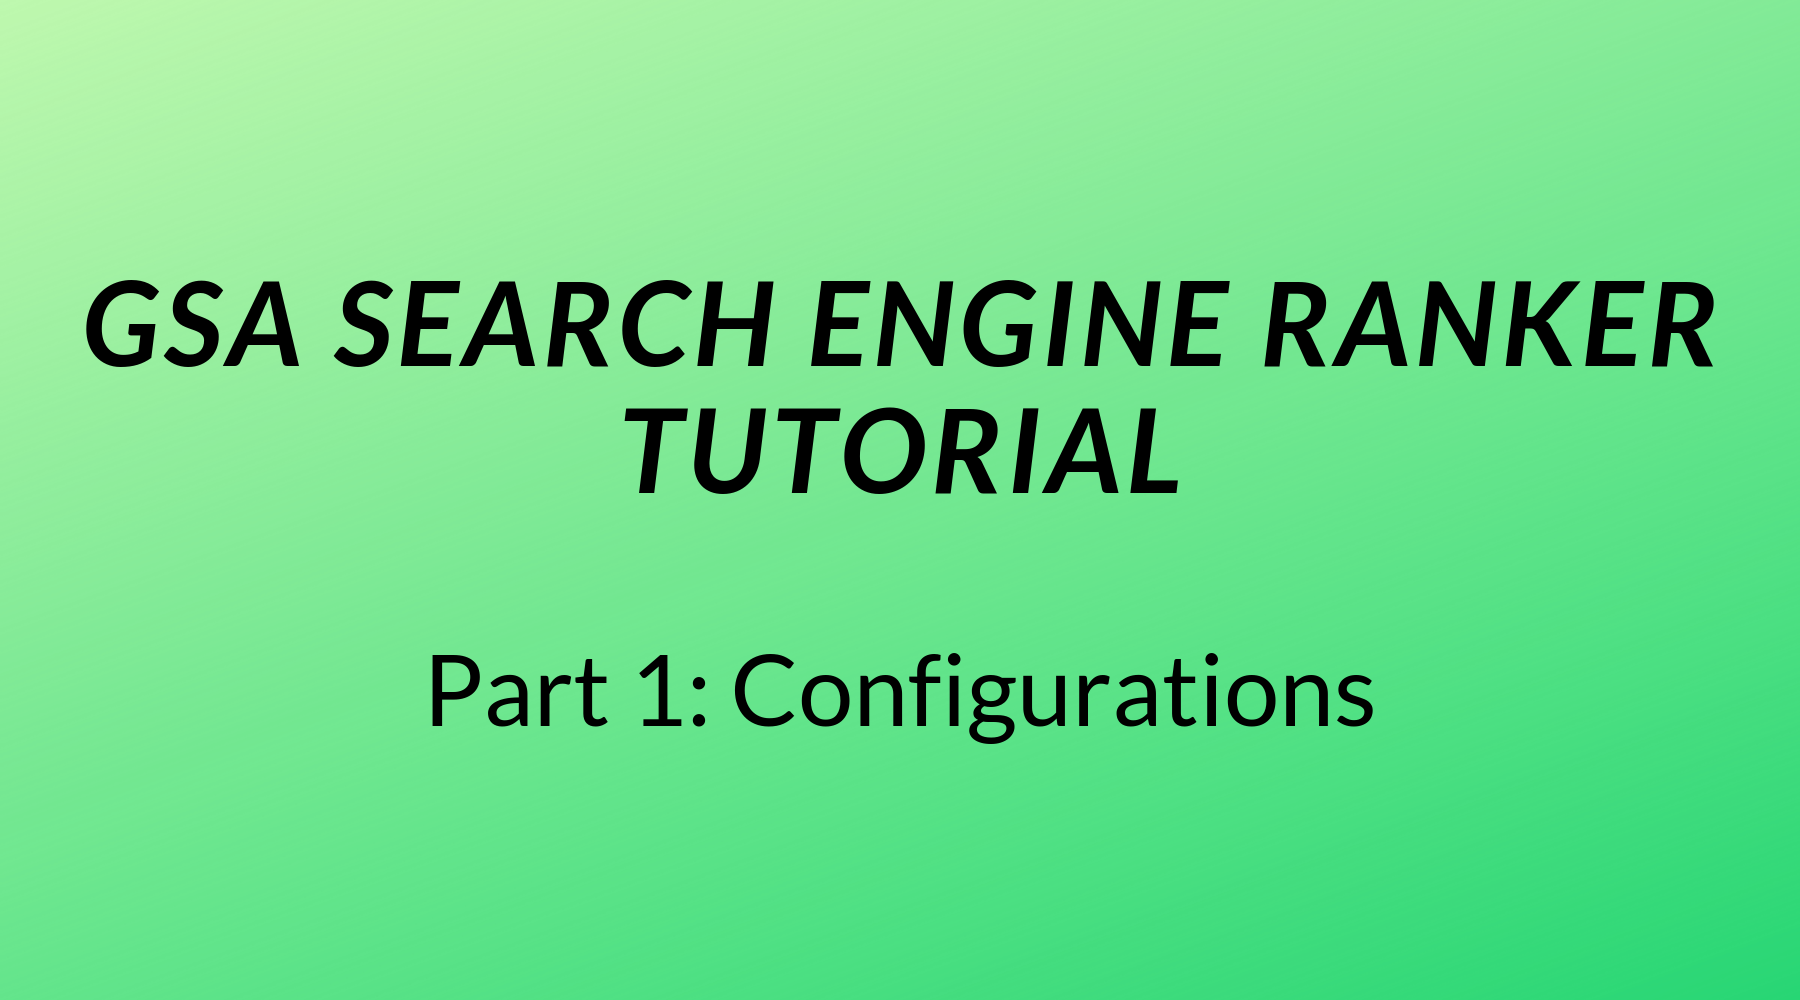 COMPLETE GSA Search Engine Ranker Tutorial